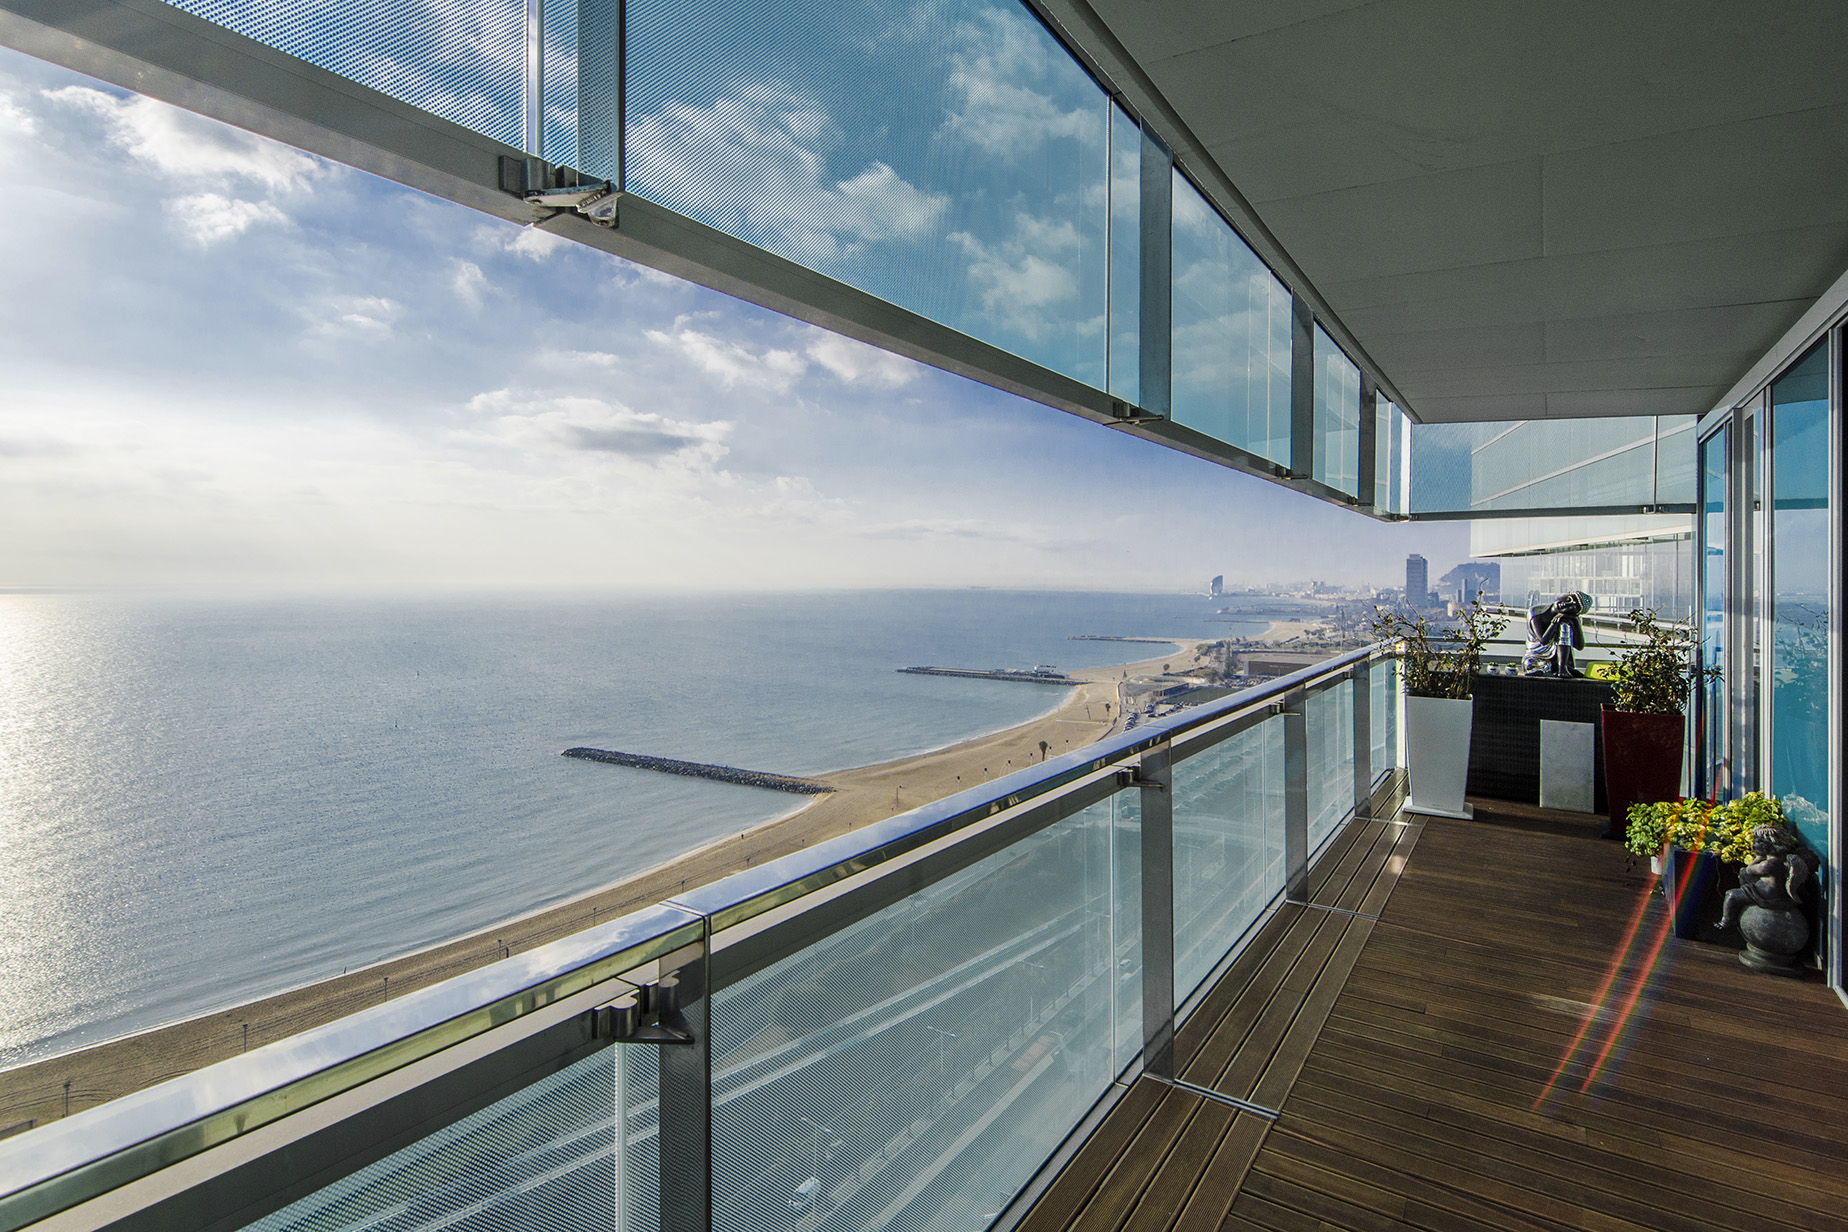 Apartment for Sale at Exclusive Seafront Apartment with excellent views to the sea and the city of ... Diagonal Mar, Barcelona City, Barcelona, 08019 Spain